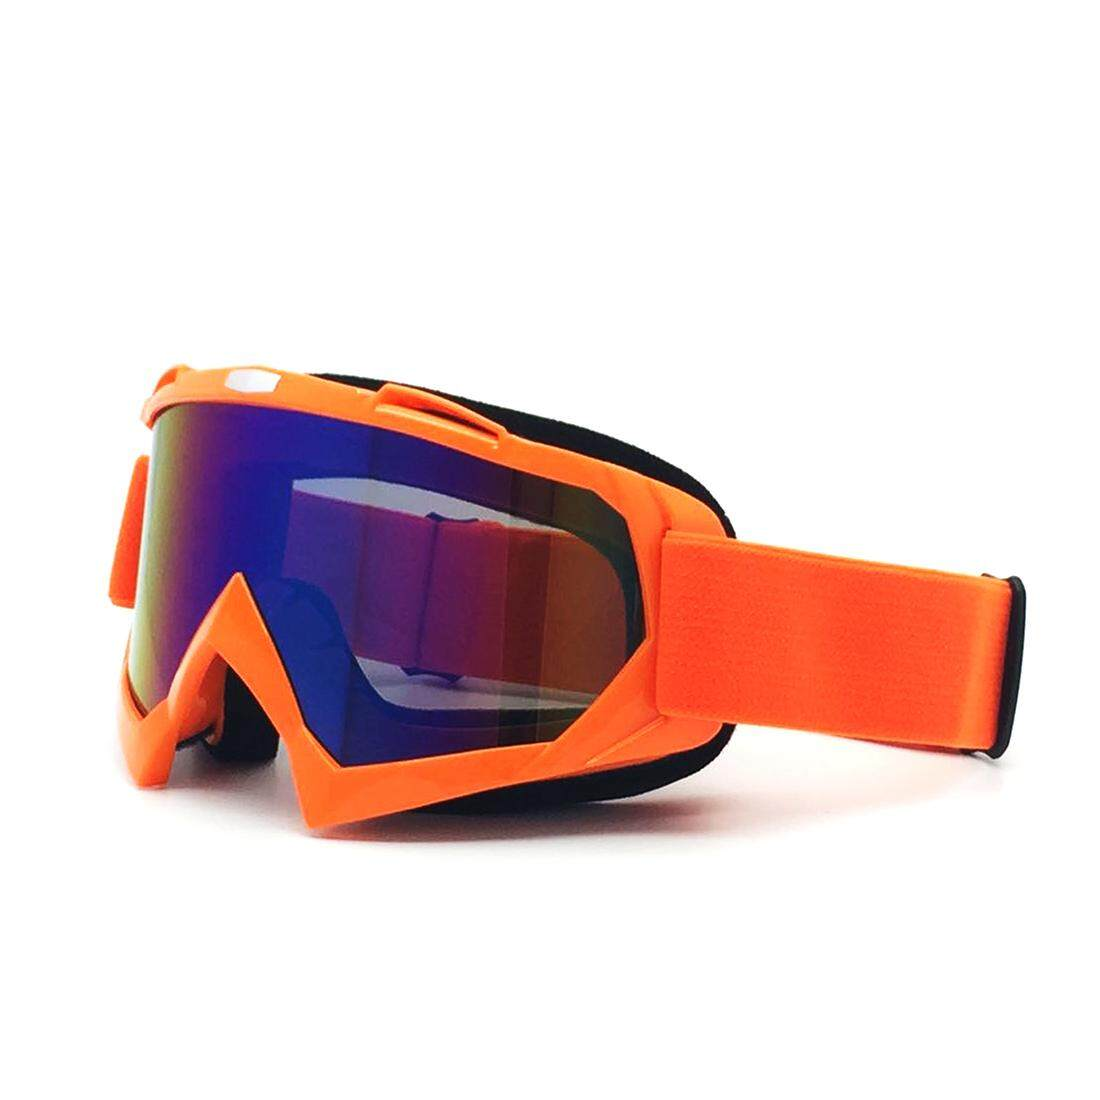 Outdoor Cycling Goggles Windproof Colorful Eyes Protector Skiing Lens